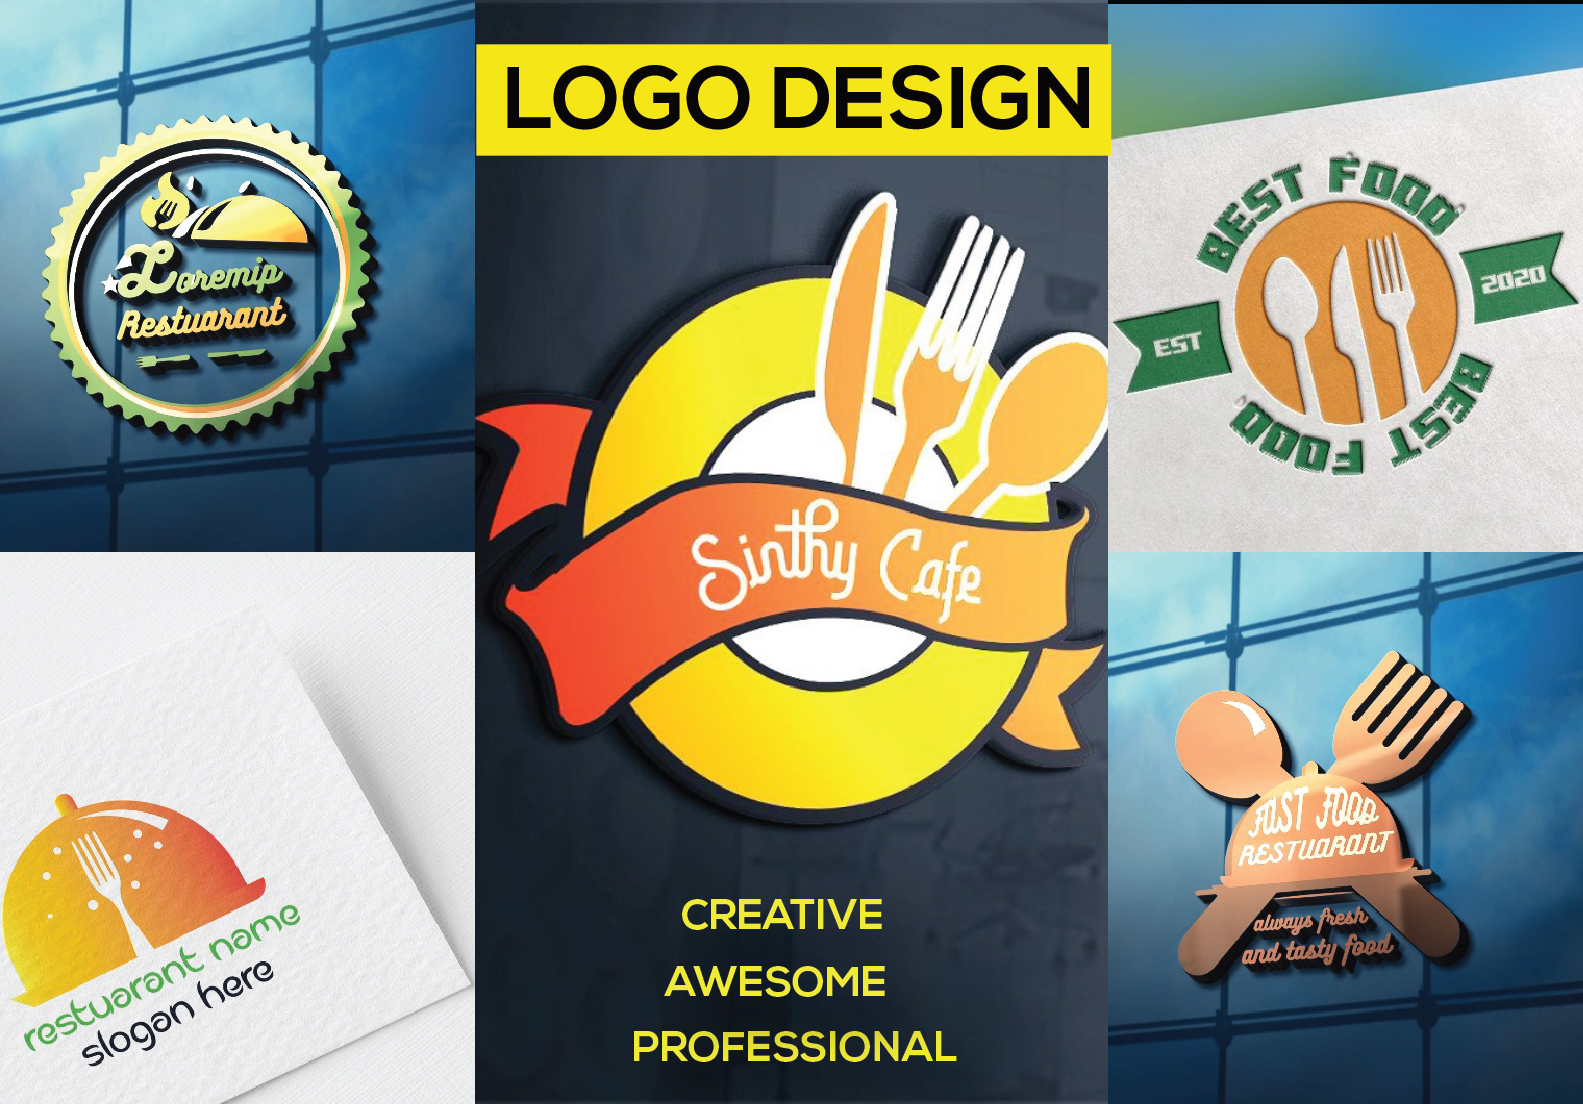 I will design professional logo and Restuaranrt logo